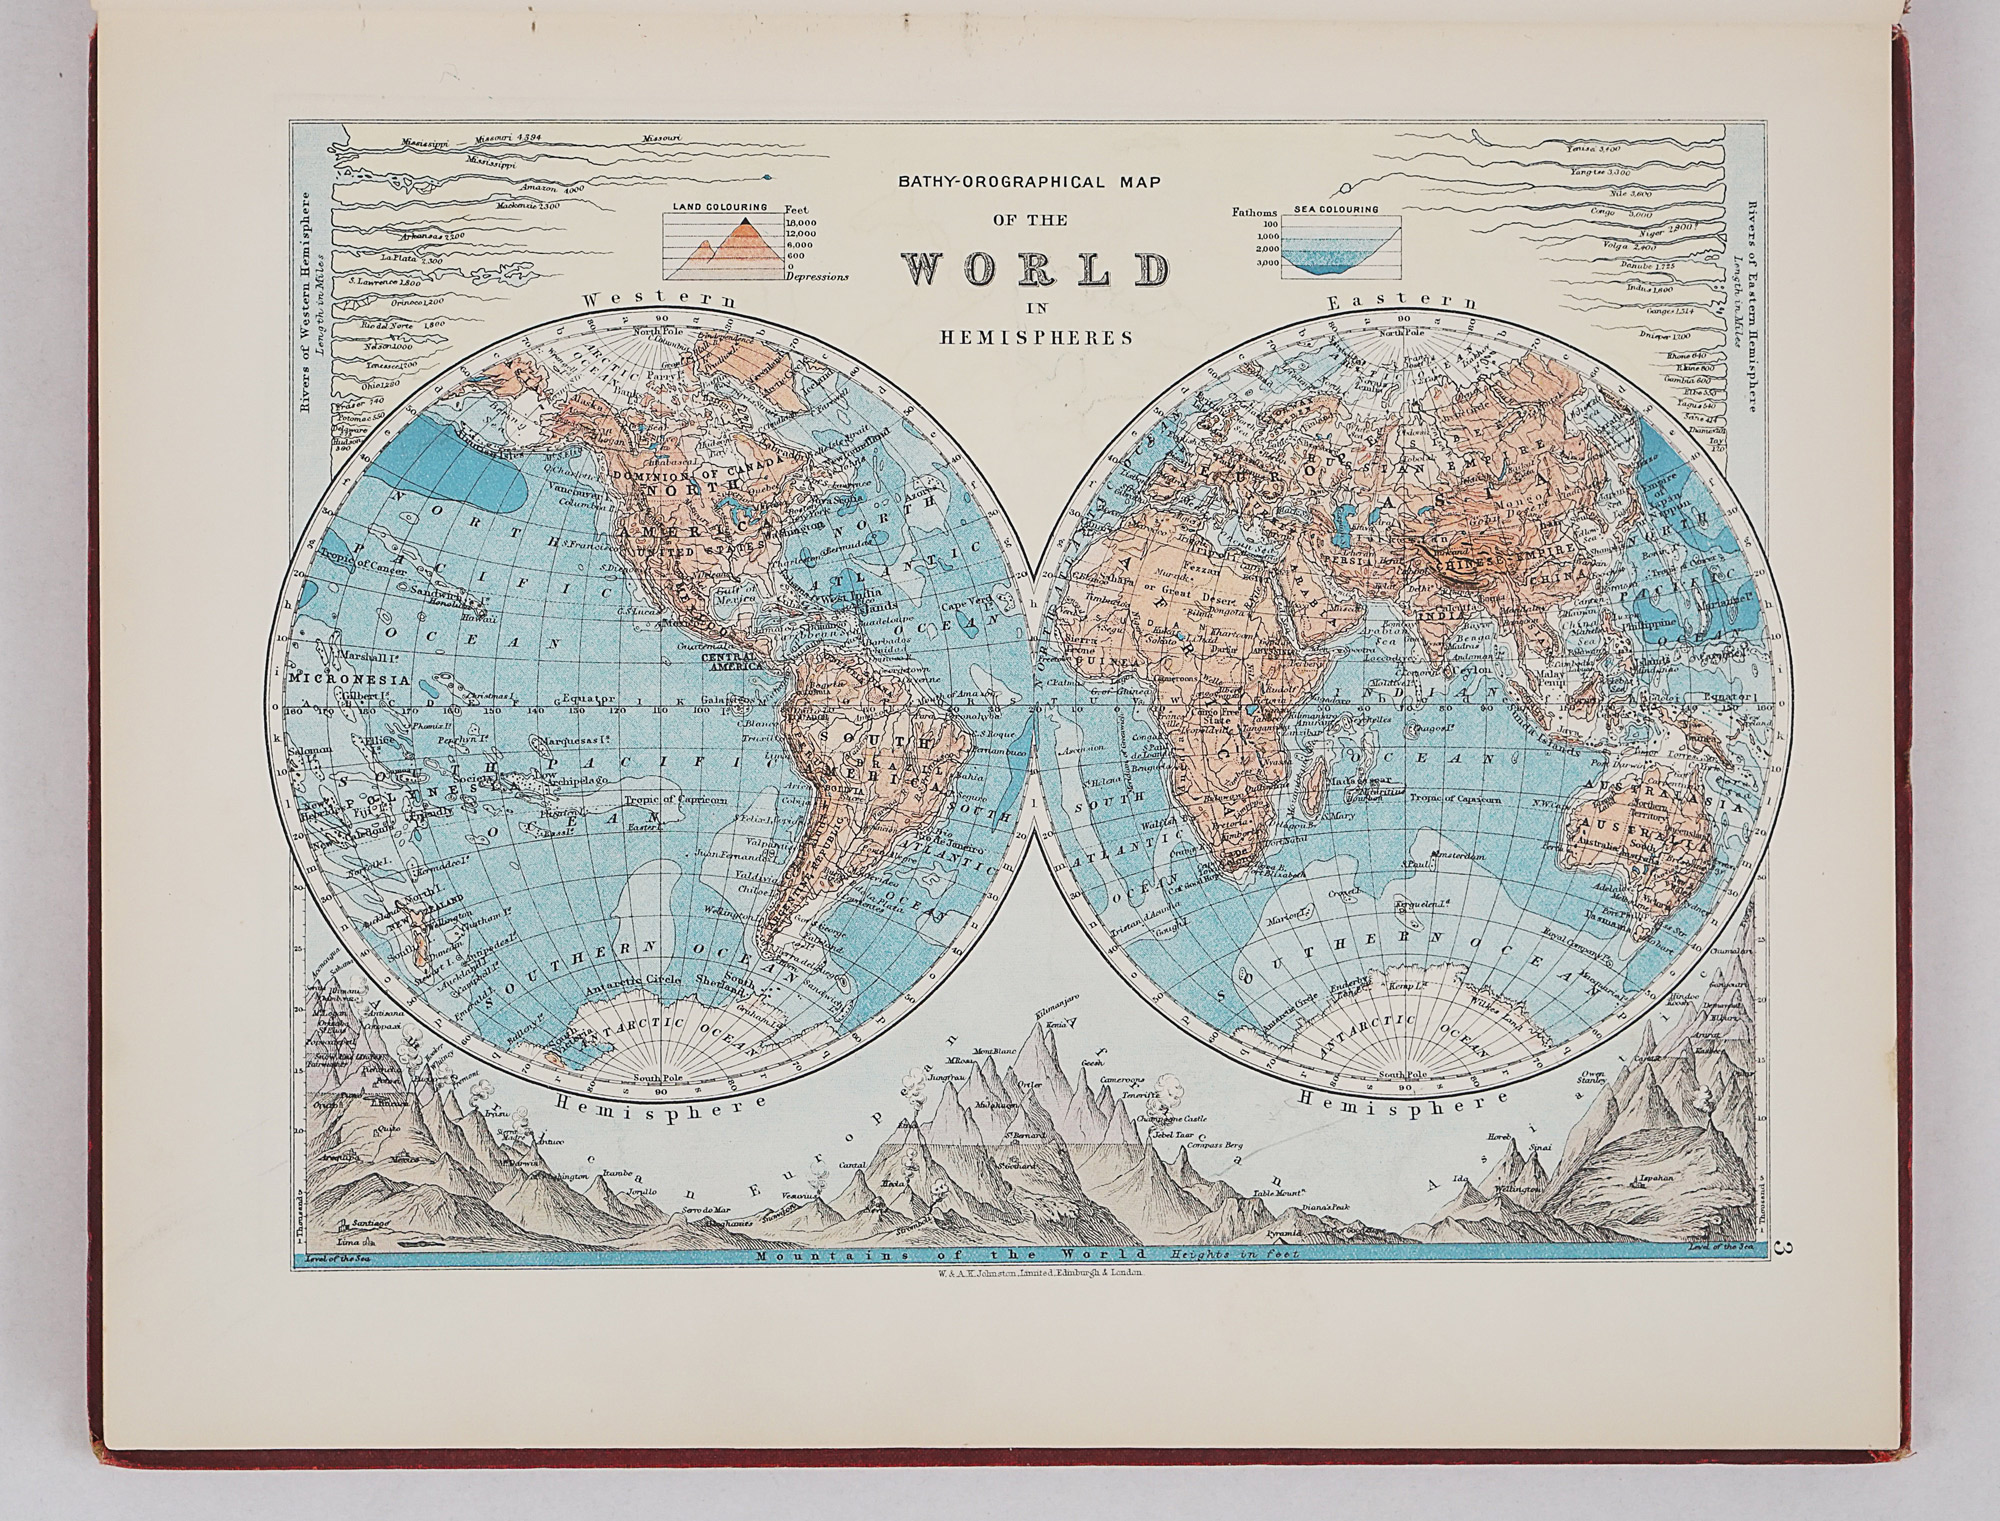 The World-Wide Atlas of Modern Geography